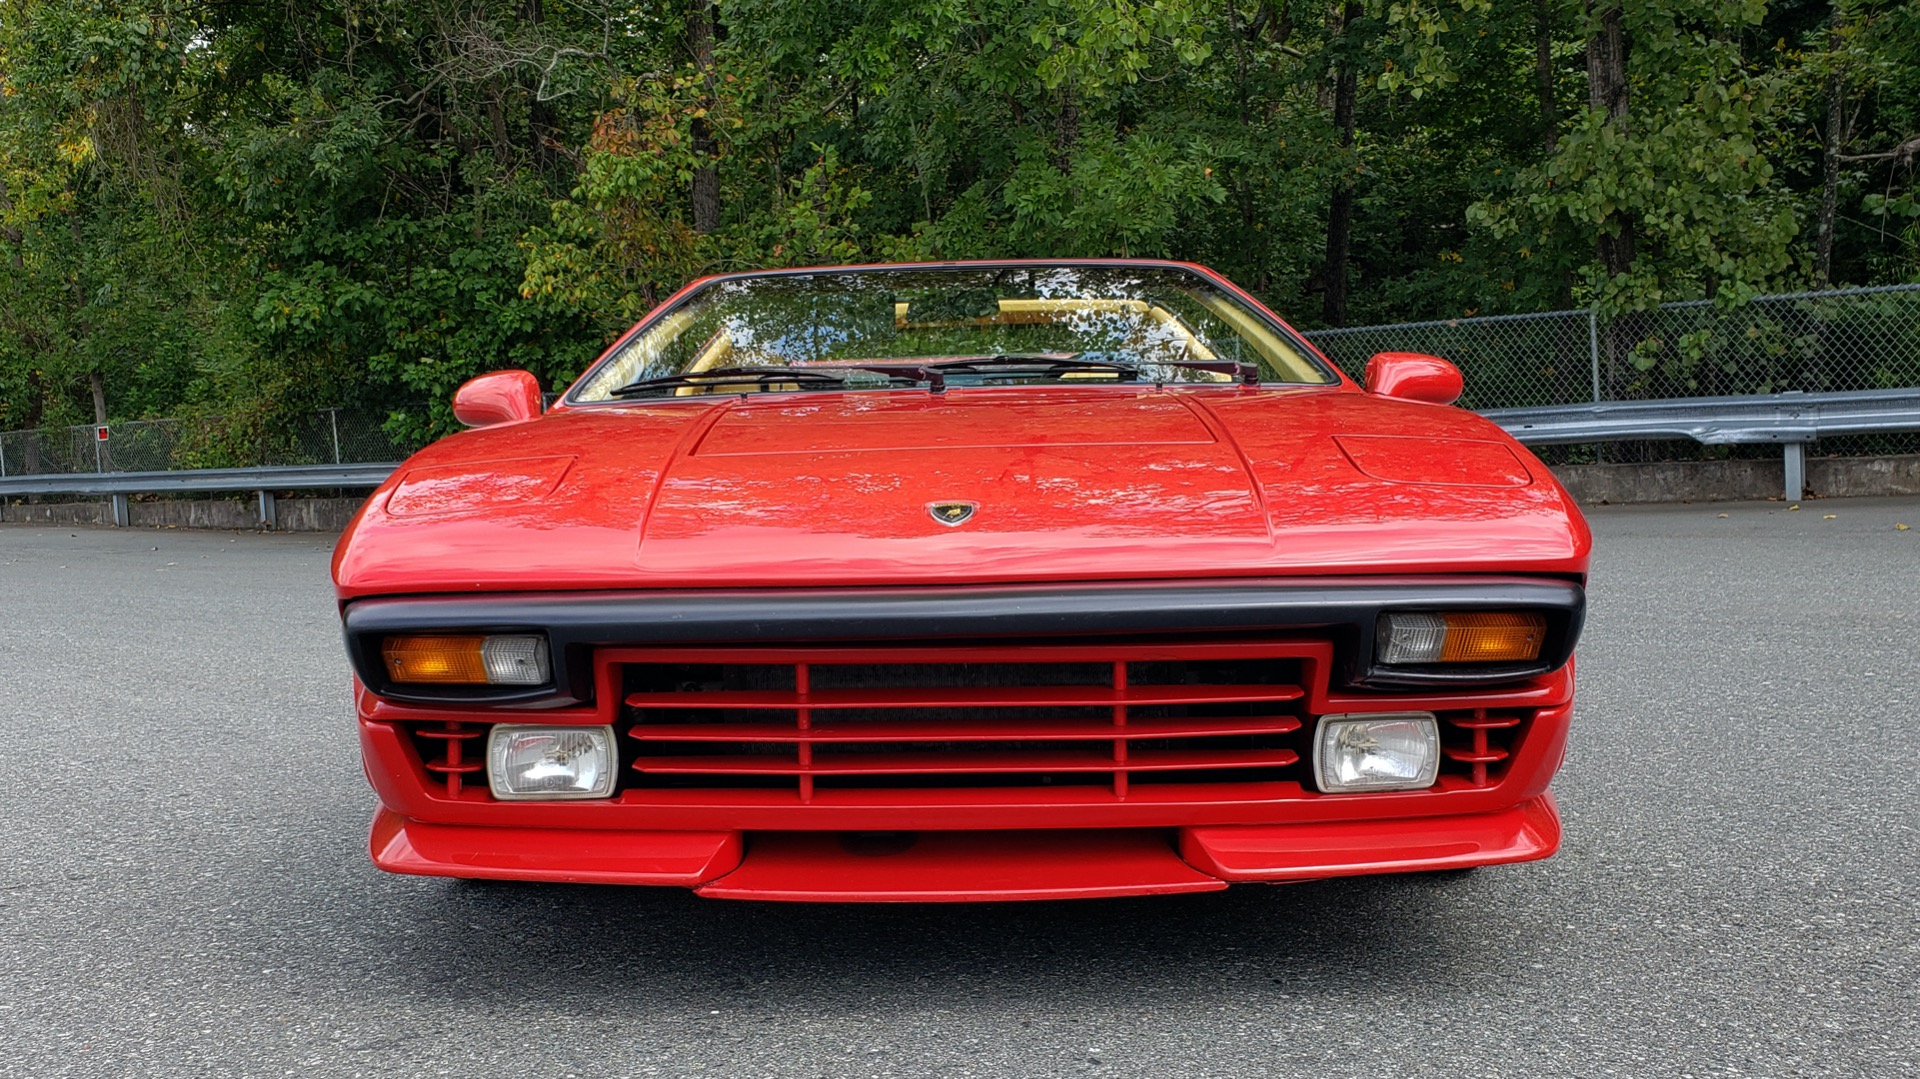 Used 1988 Lamborghini JALPA 3.5 / 5-SPD MANUAL / LOW MILES / EXCELLENT CONDITION for sale Sold at Formula Imports in Charlotte NC 28227 64